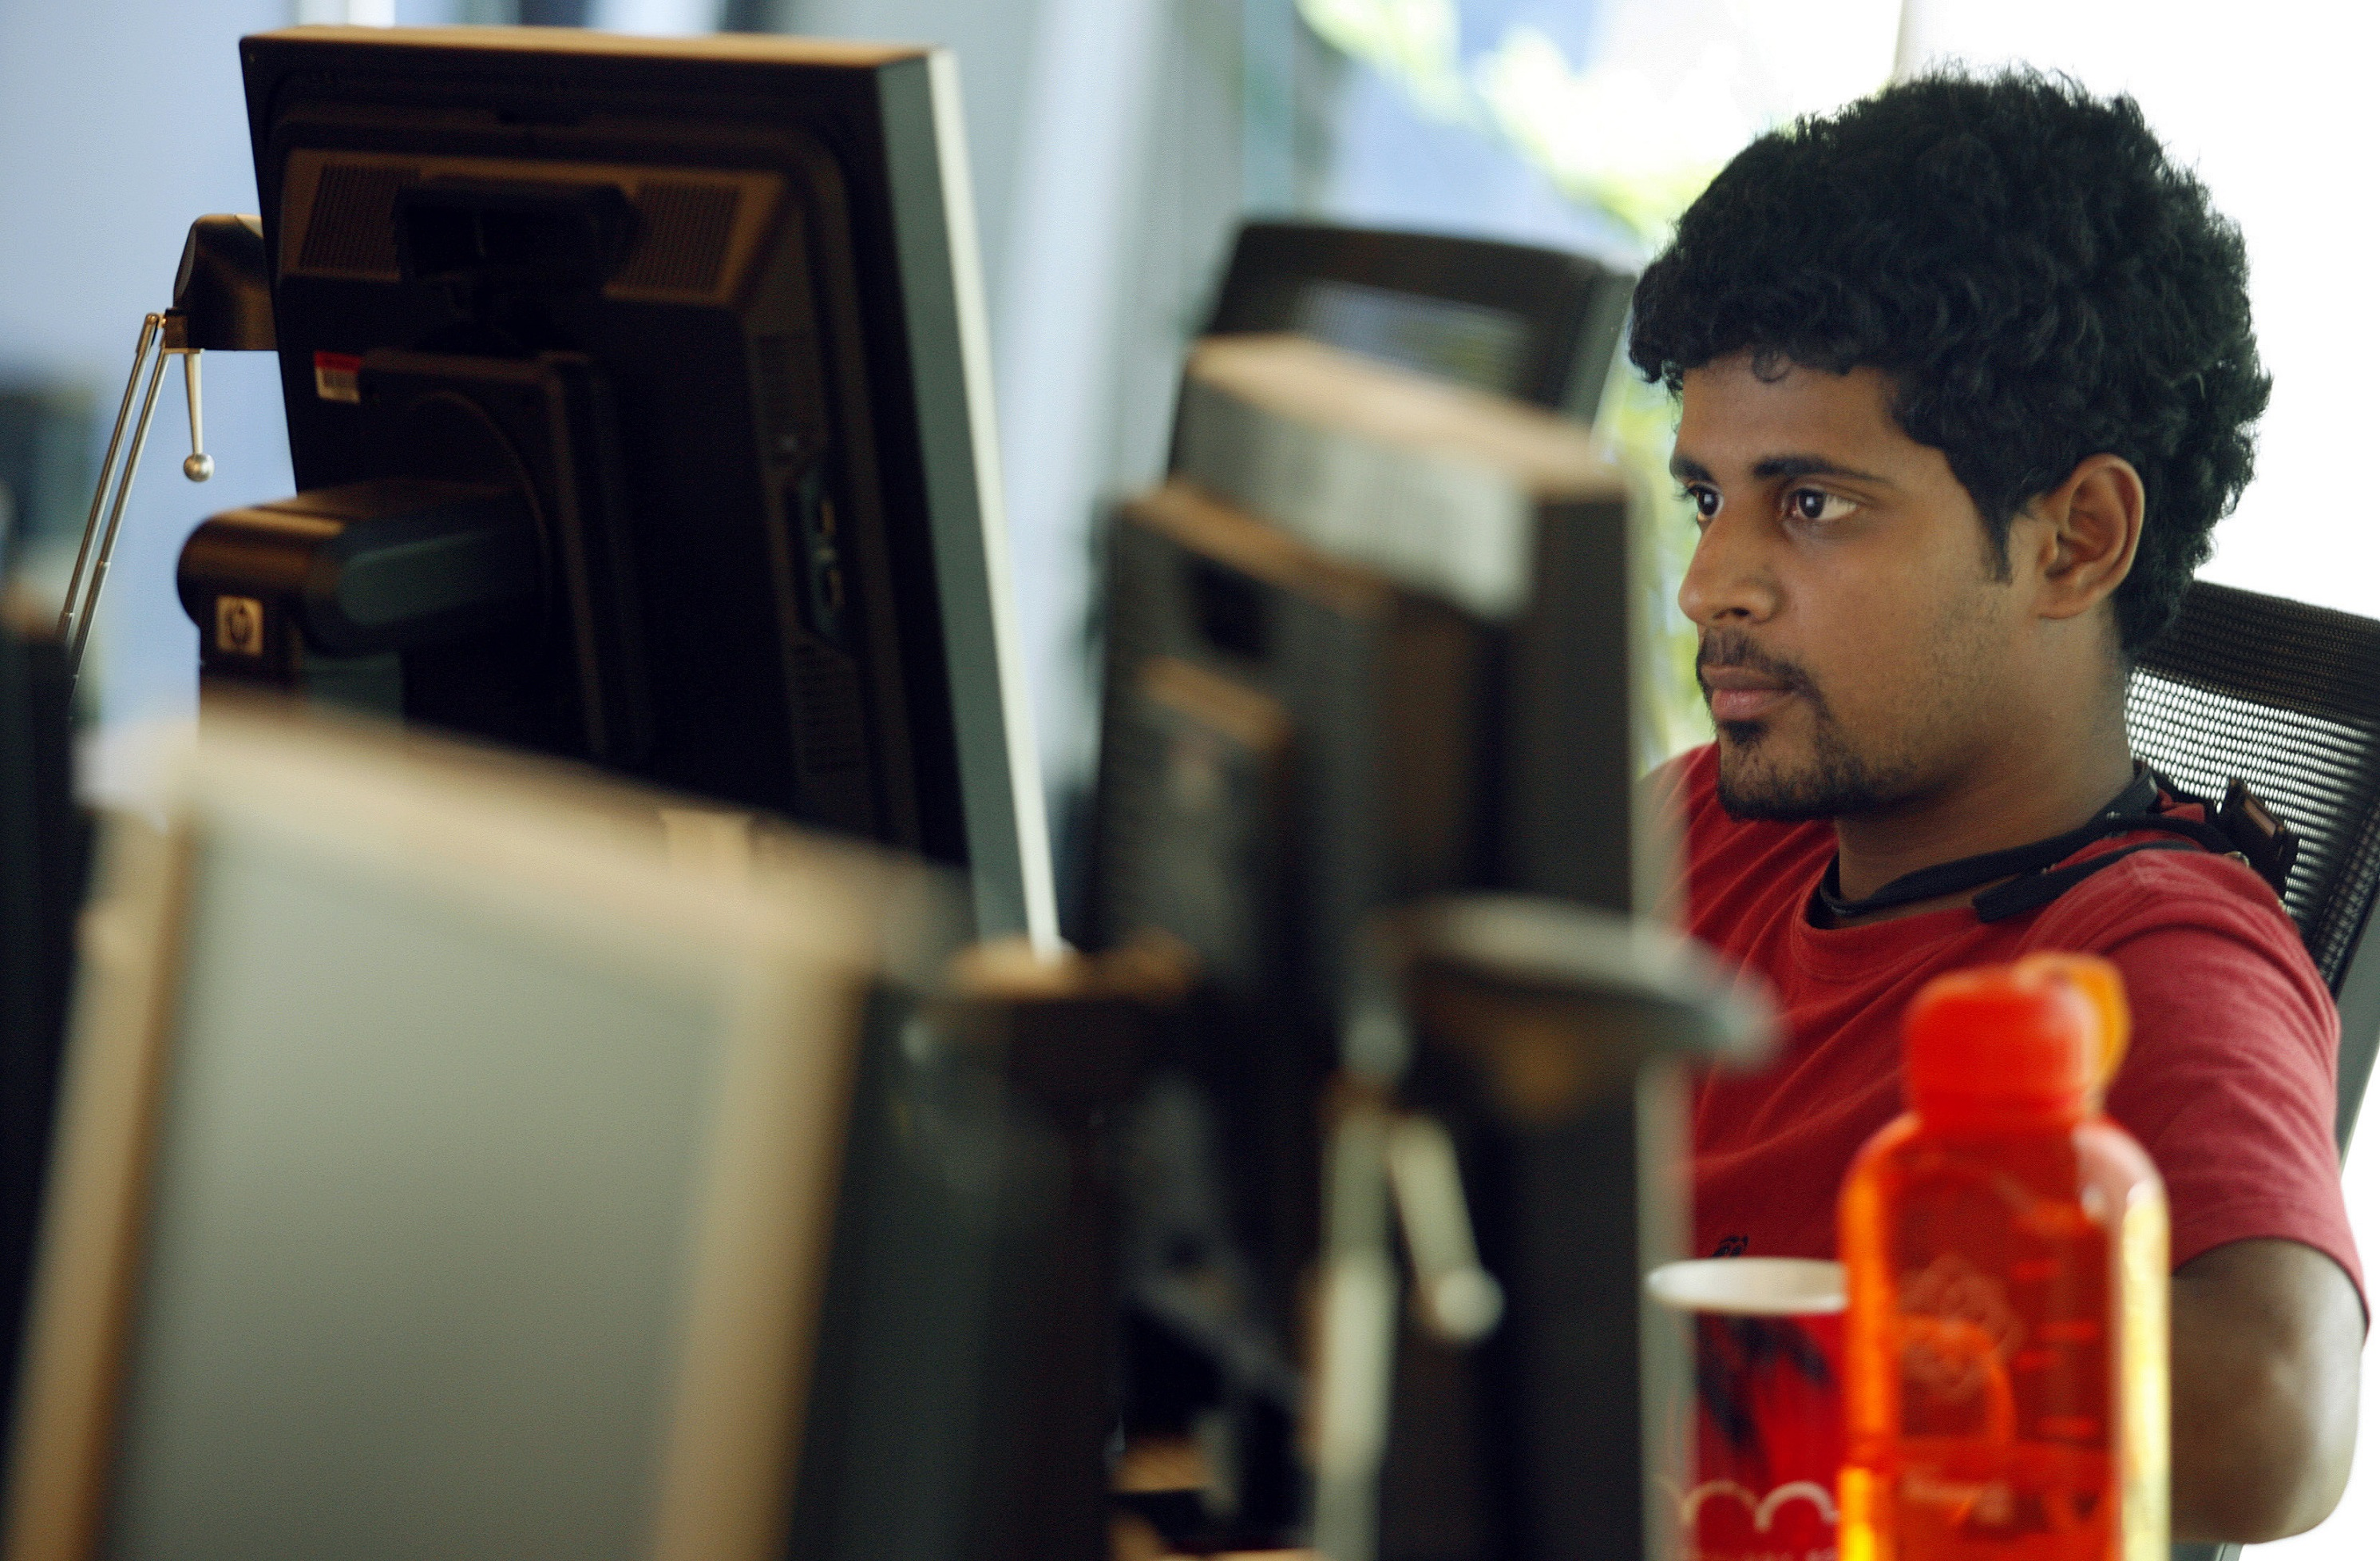 A researcher works on his terminal at the Microsoft India research centre in Bangalore June 24, 2009. Staffed with about 60 full-time researchers, many of them Indians with PhDs from top universities in the United States, the centre is at the cutting edge of Microsoft's R&D. It covers seven areas of research including mobility and cryptography. Its success, including developing a popular tool for Microsoft's new search engine Bing, underscores the potential of R&D in India at a time when cost-conscious firms are keen to offshore to save money by using talented researchers abroad.  To match feature INDIA-R&D/ REUTERS/Punit Paranjpe (INDIA SCI TECH BUSINESS) - GM1E57L0LK701